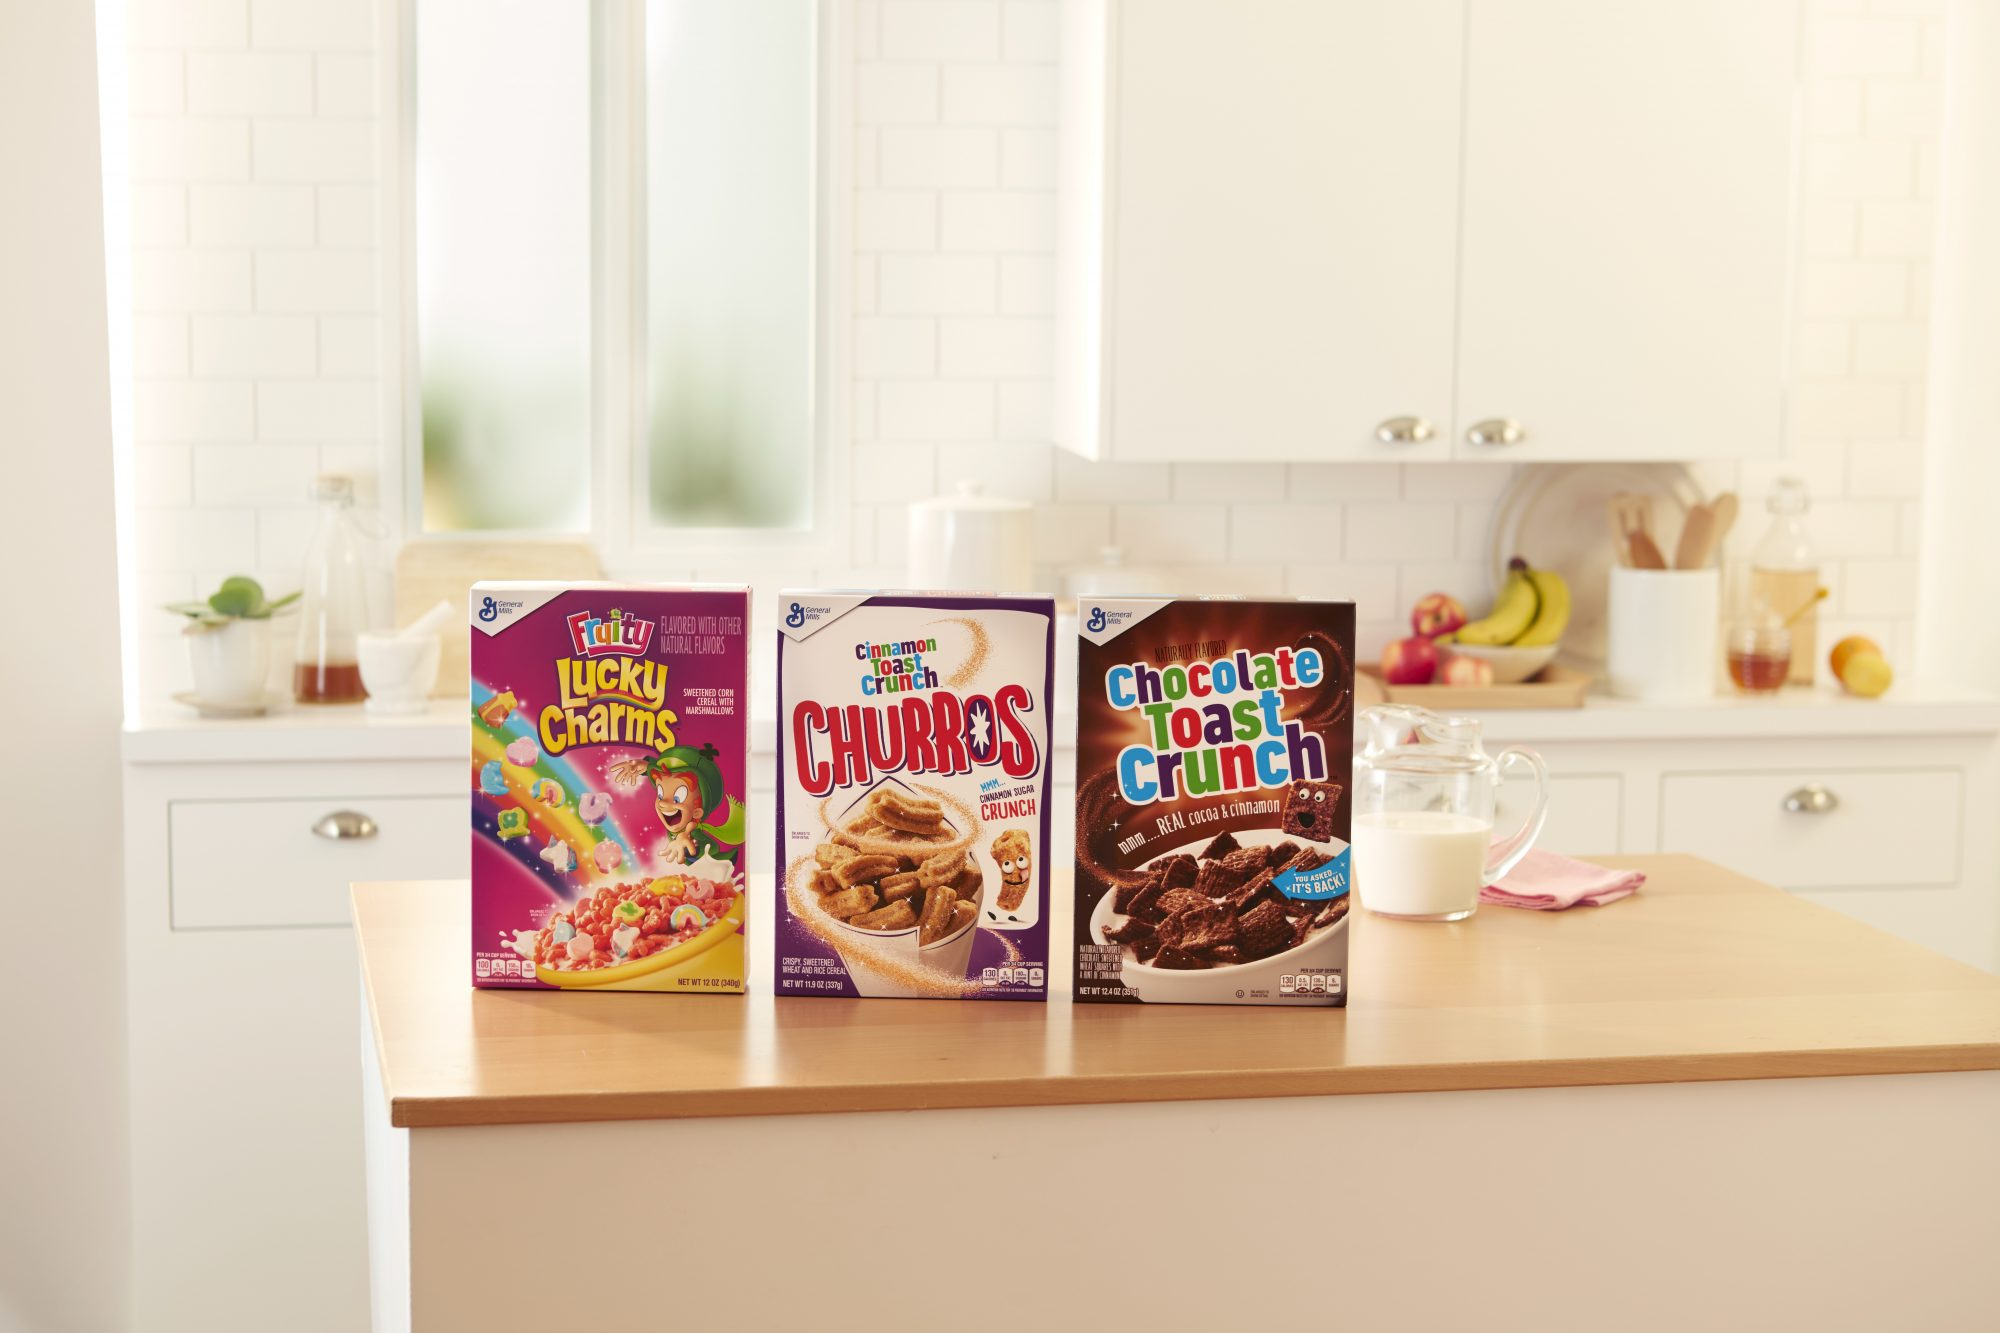 Cinnamon Toast Crunch Launches Churro Cereal